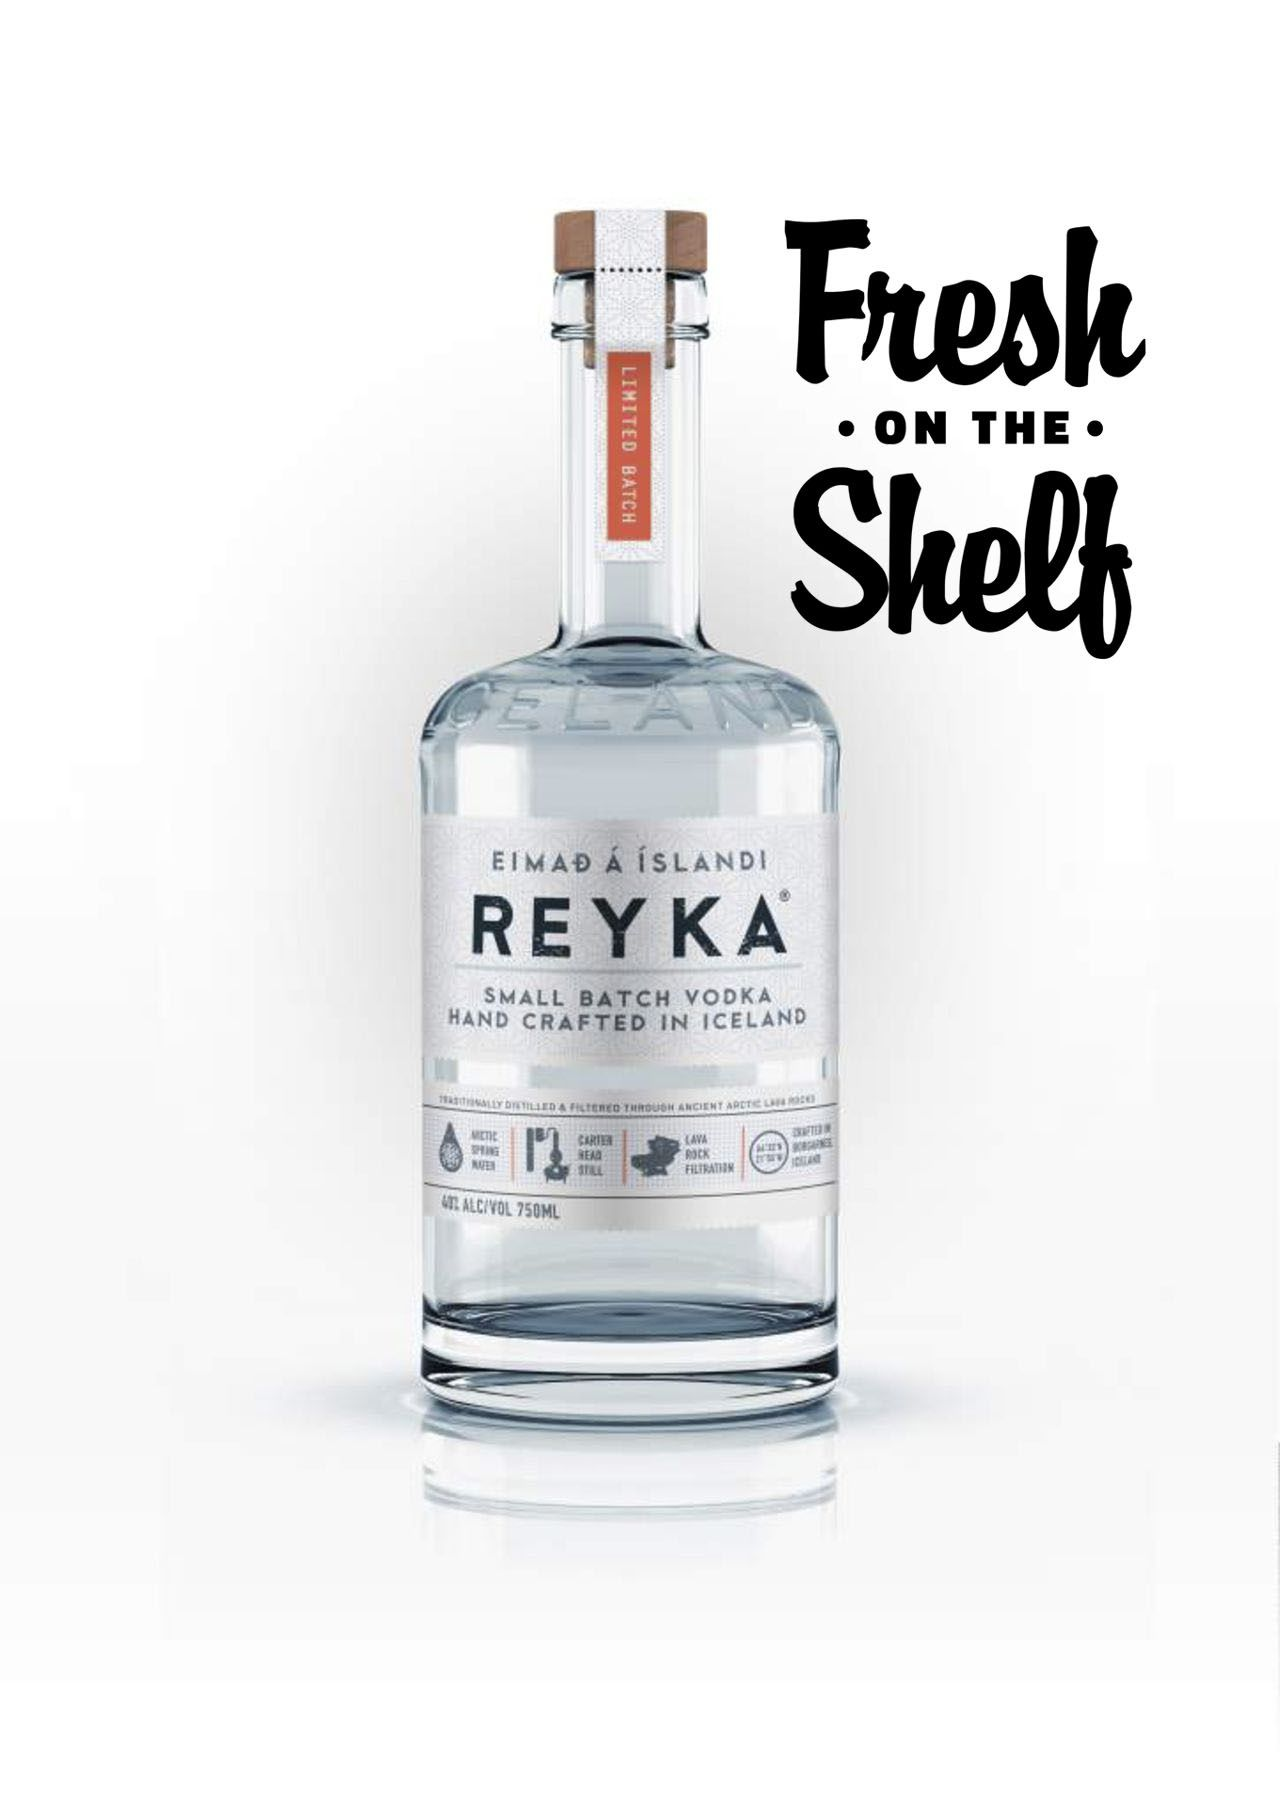 #freshontheshelf: Iceland's Reyka Vodka Now In South Africa photo